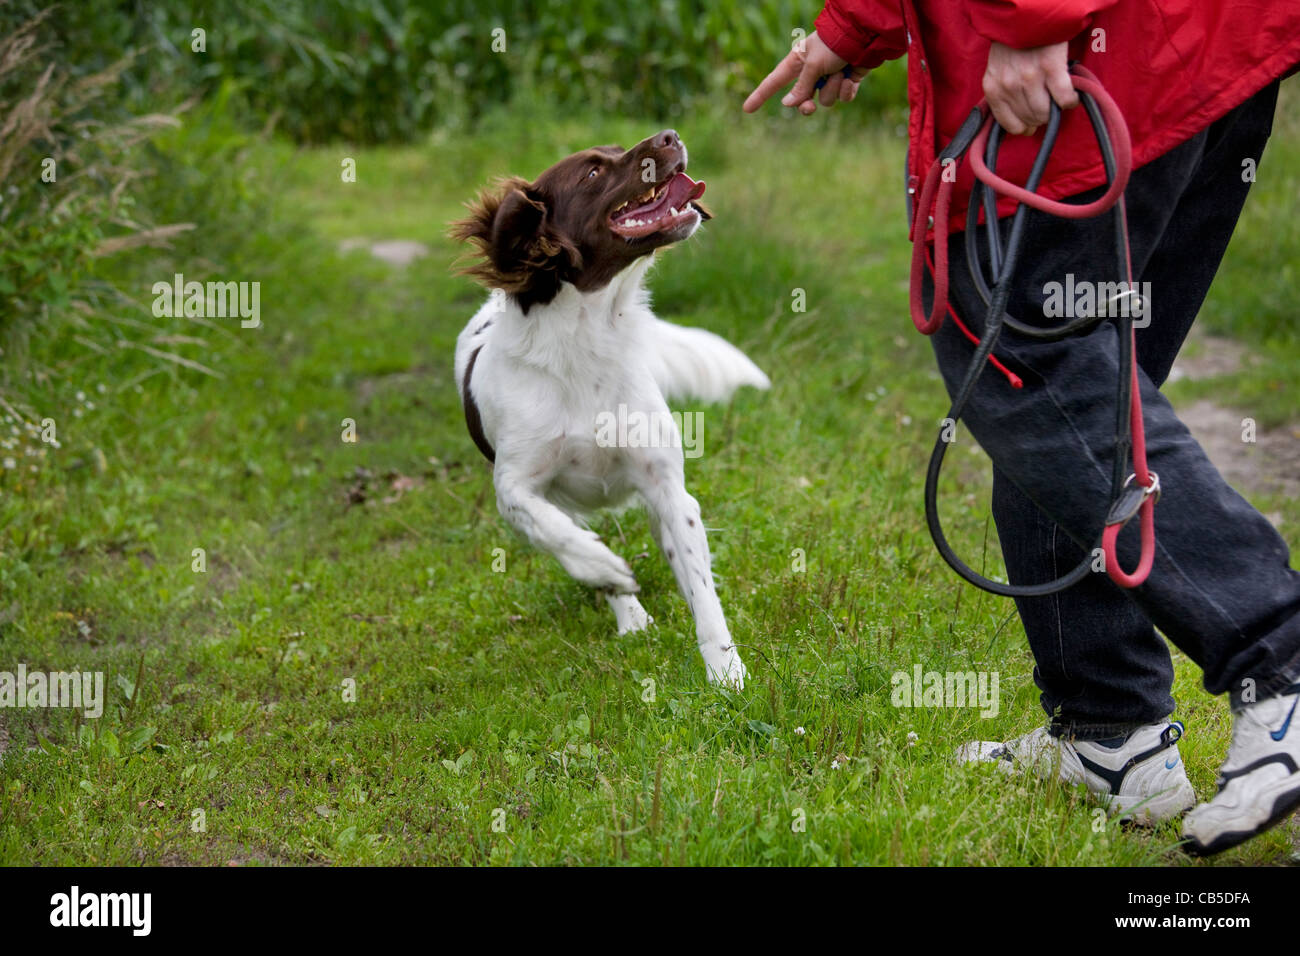 Drentsche Patrijshond / Dutch Partridge Dog / Drent spaniel type hunting dog and owner with leash in field, the - Stock Image